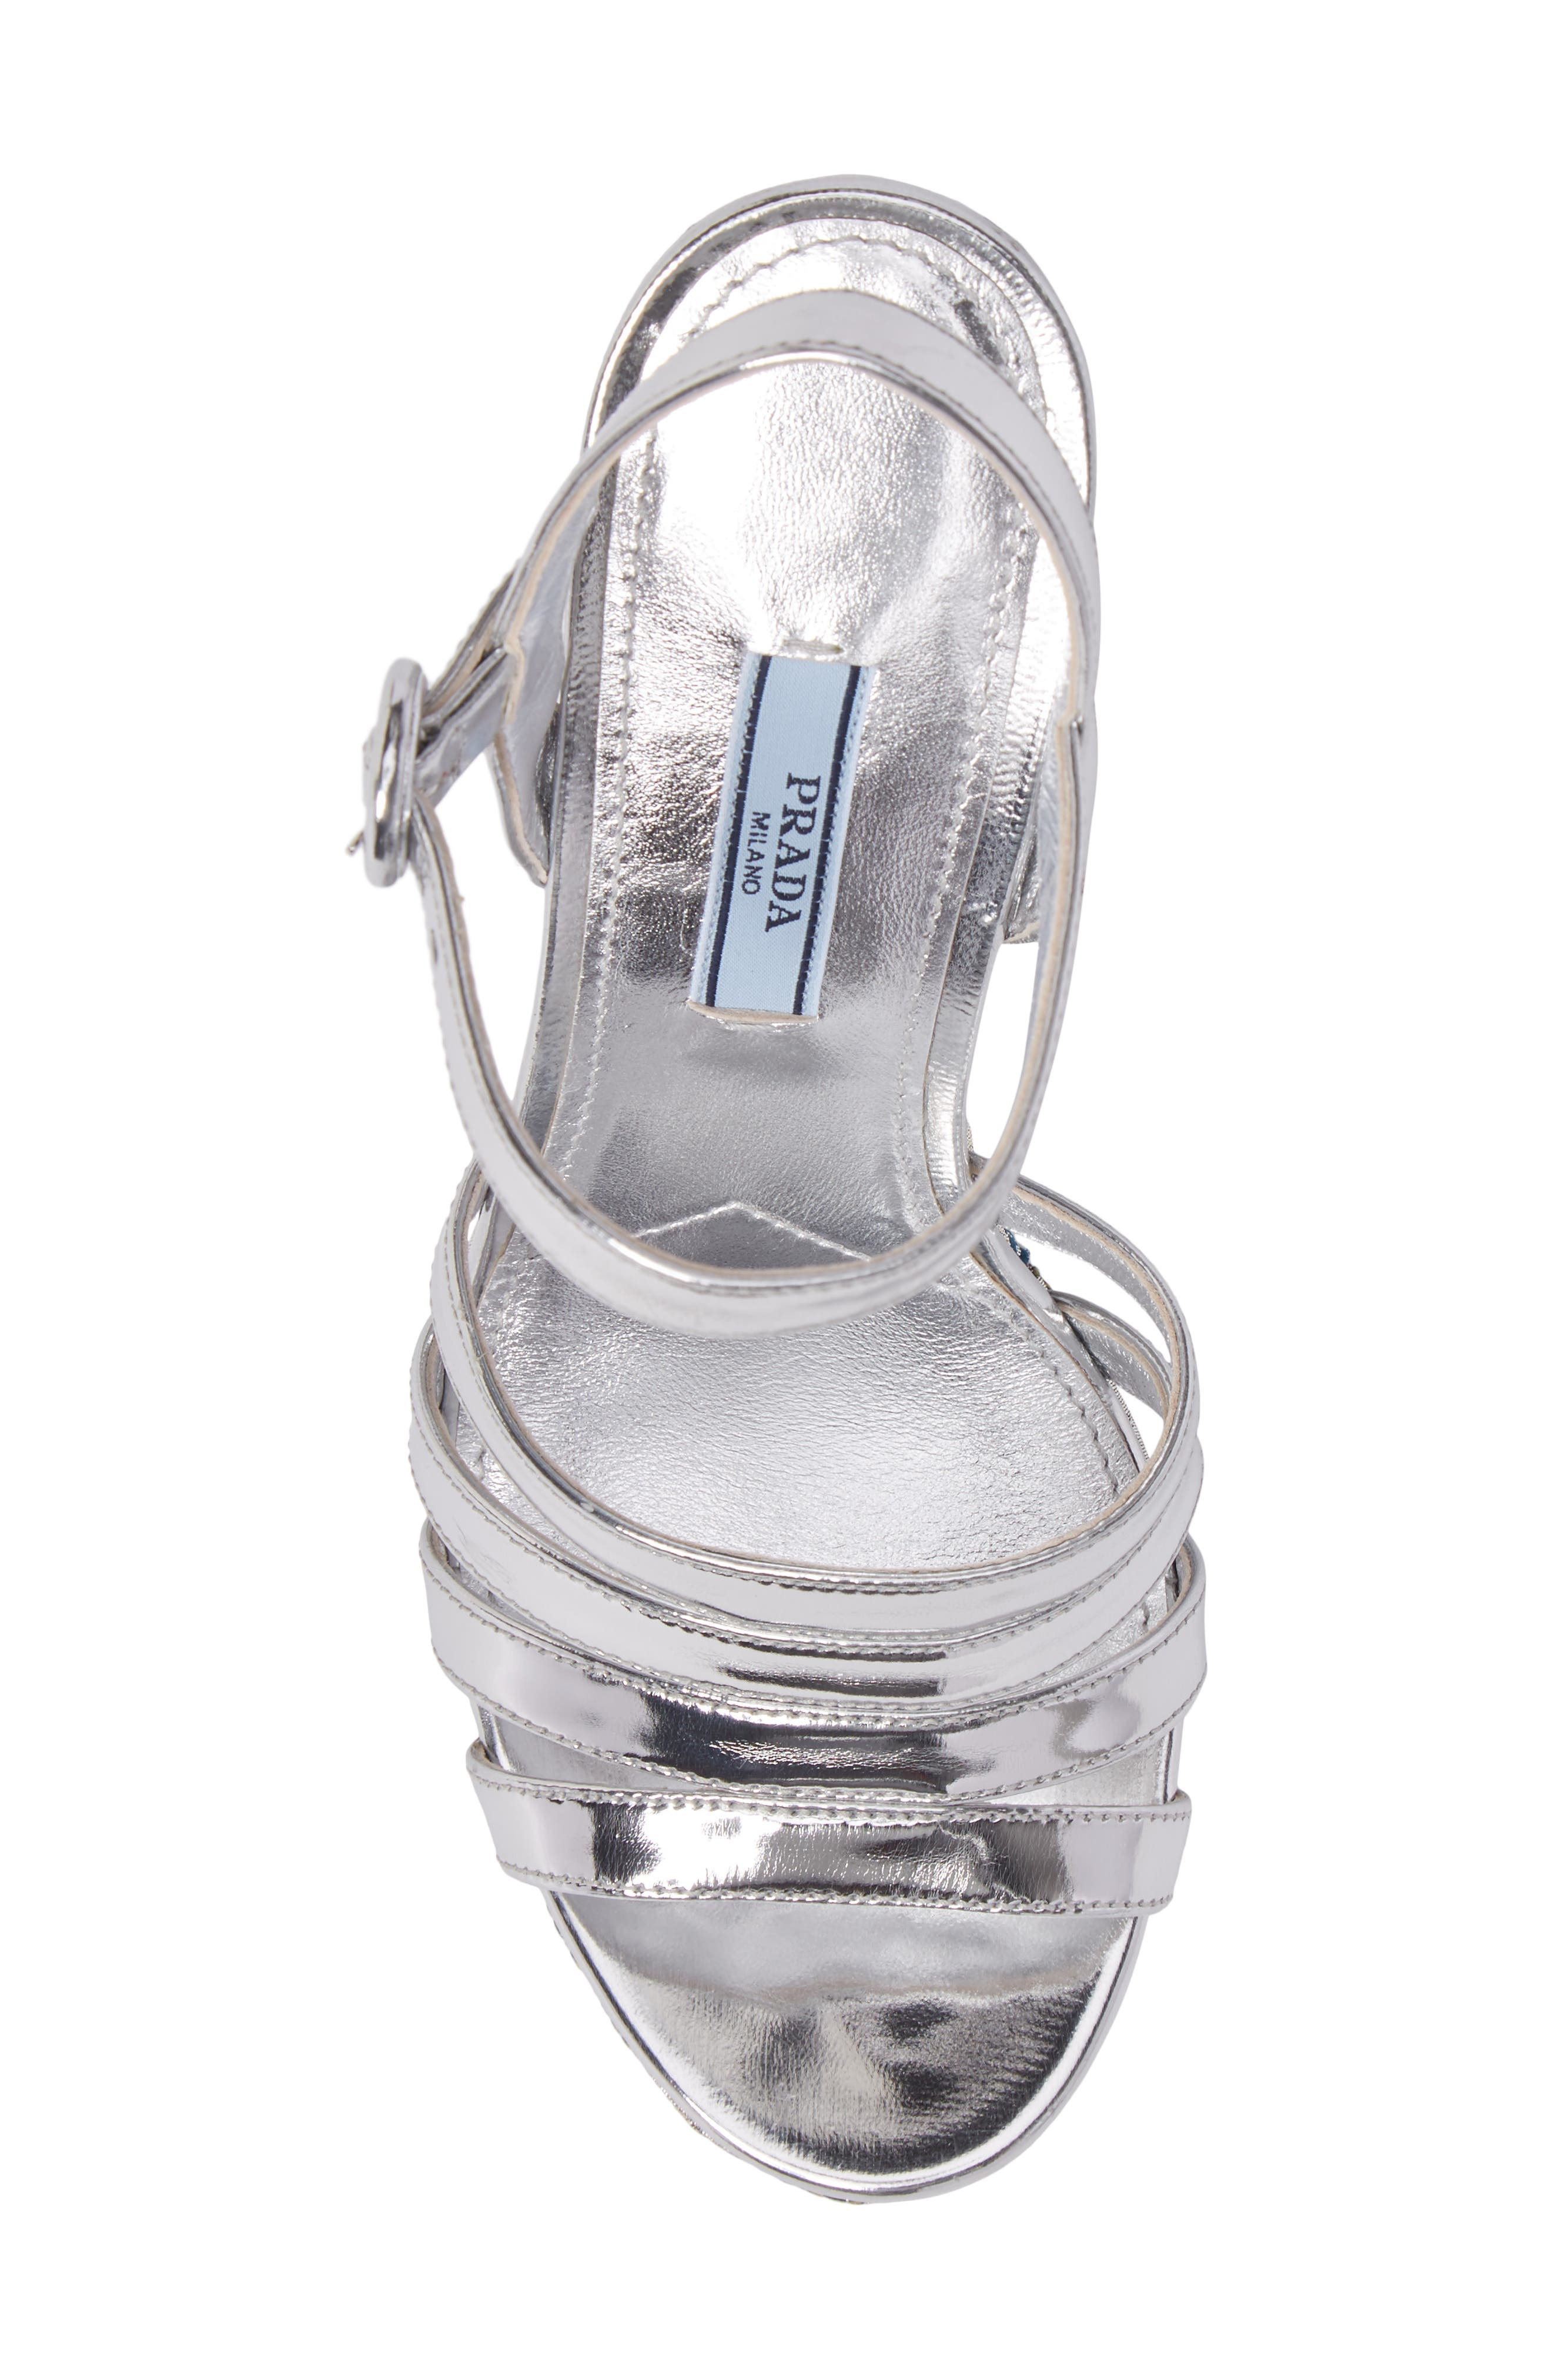 Floral Wedge Platform Sandals,                             Alternate thumbnail 5, color,                             Silver/ Blue